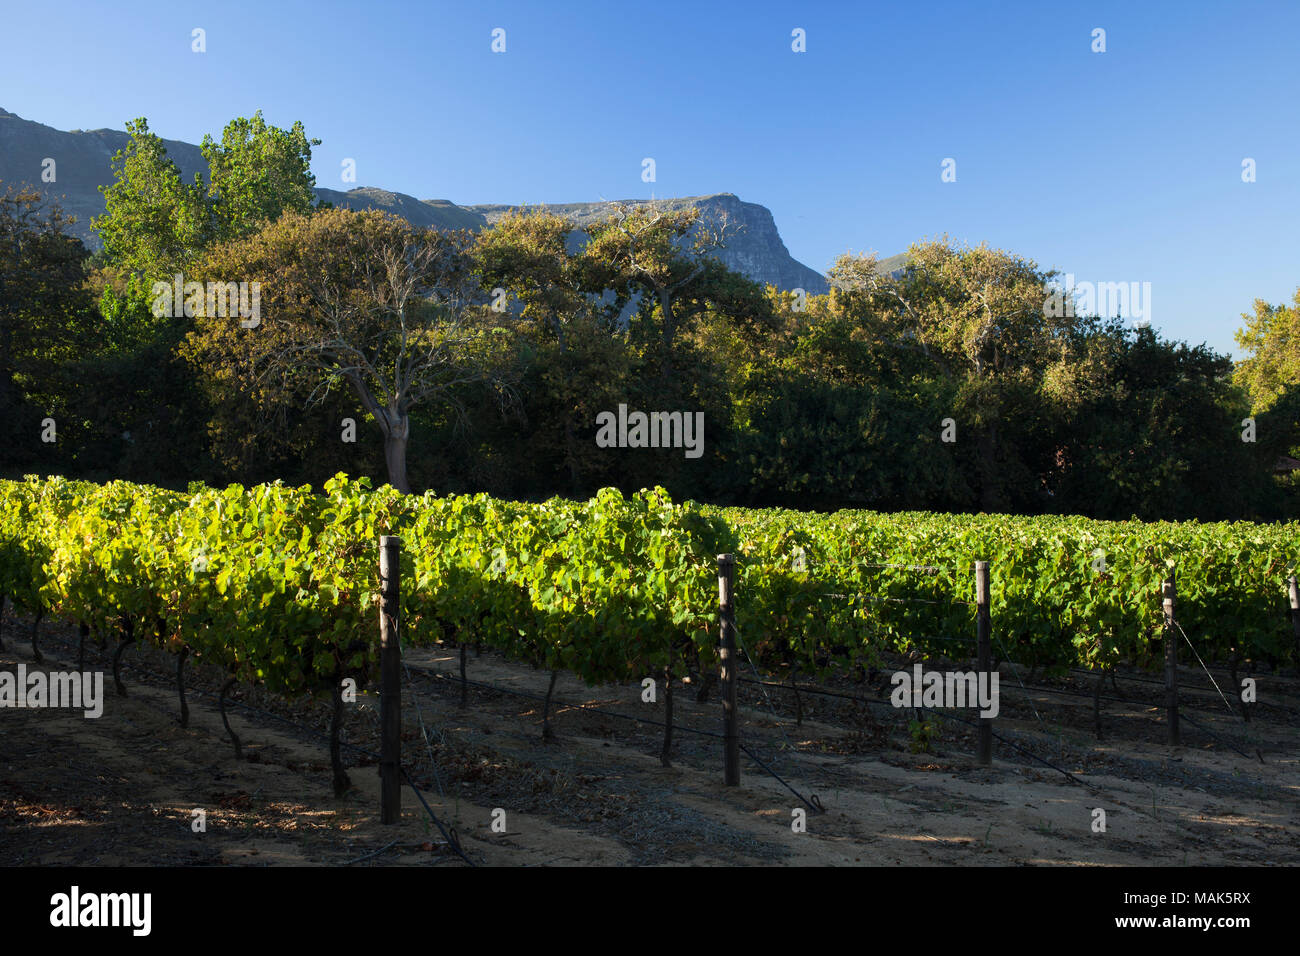 A neat, sunlit vineyard in Constantia, Cape Town - Stock Image